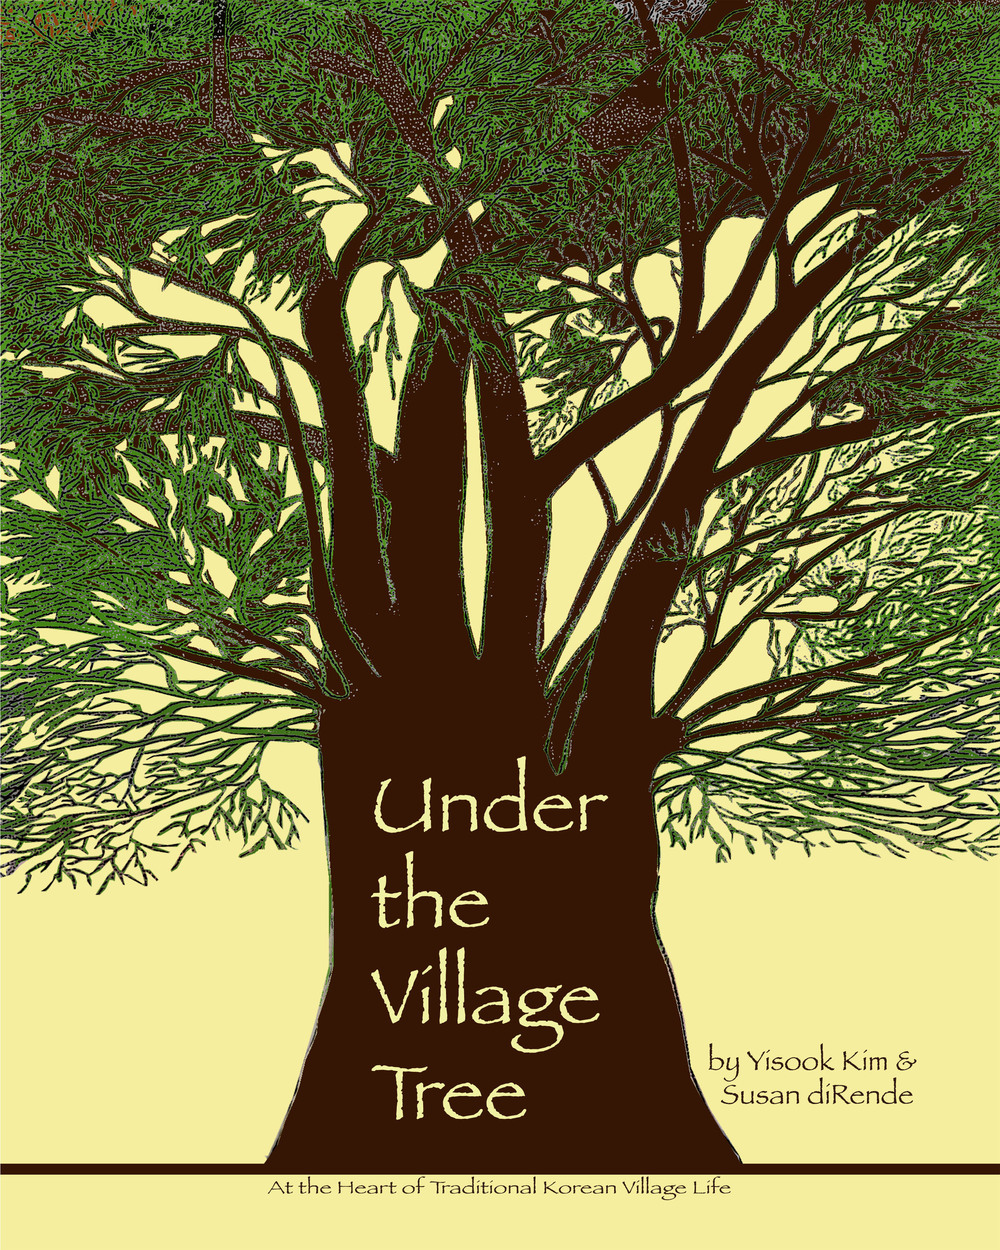 under-the-village-tree-by-susan-dirende.jpg